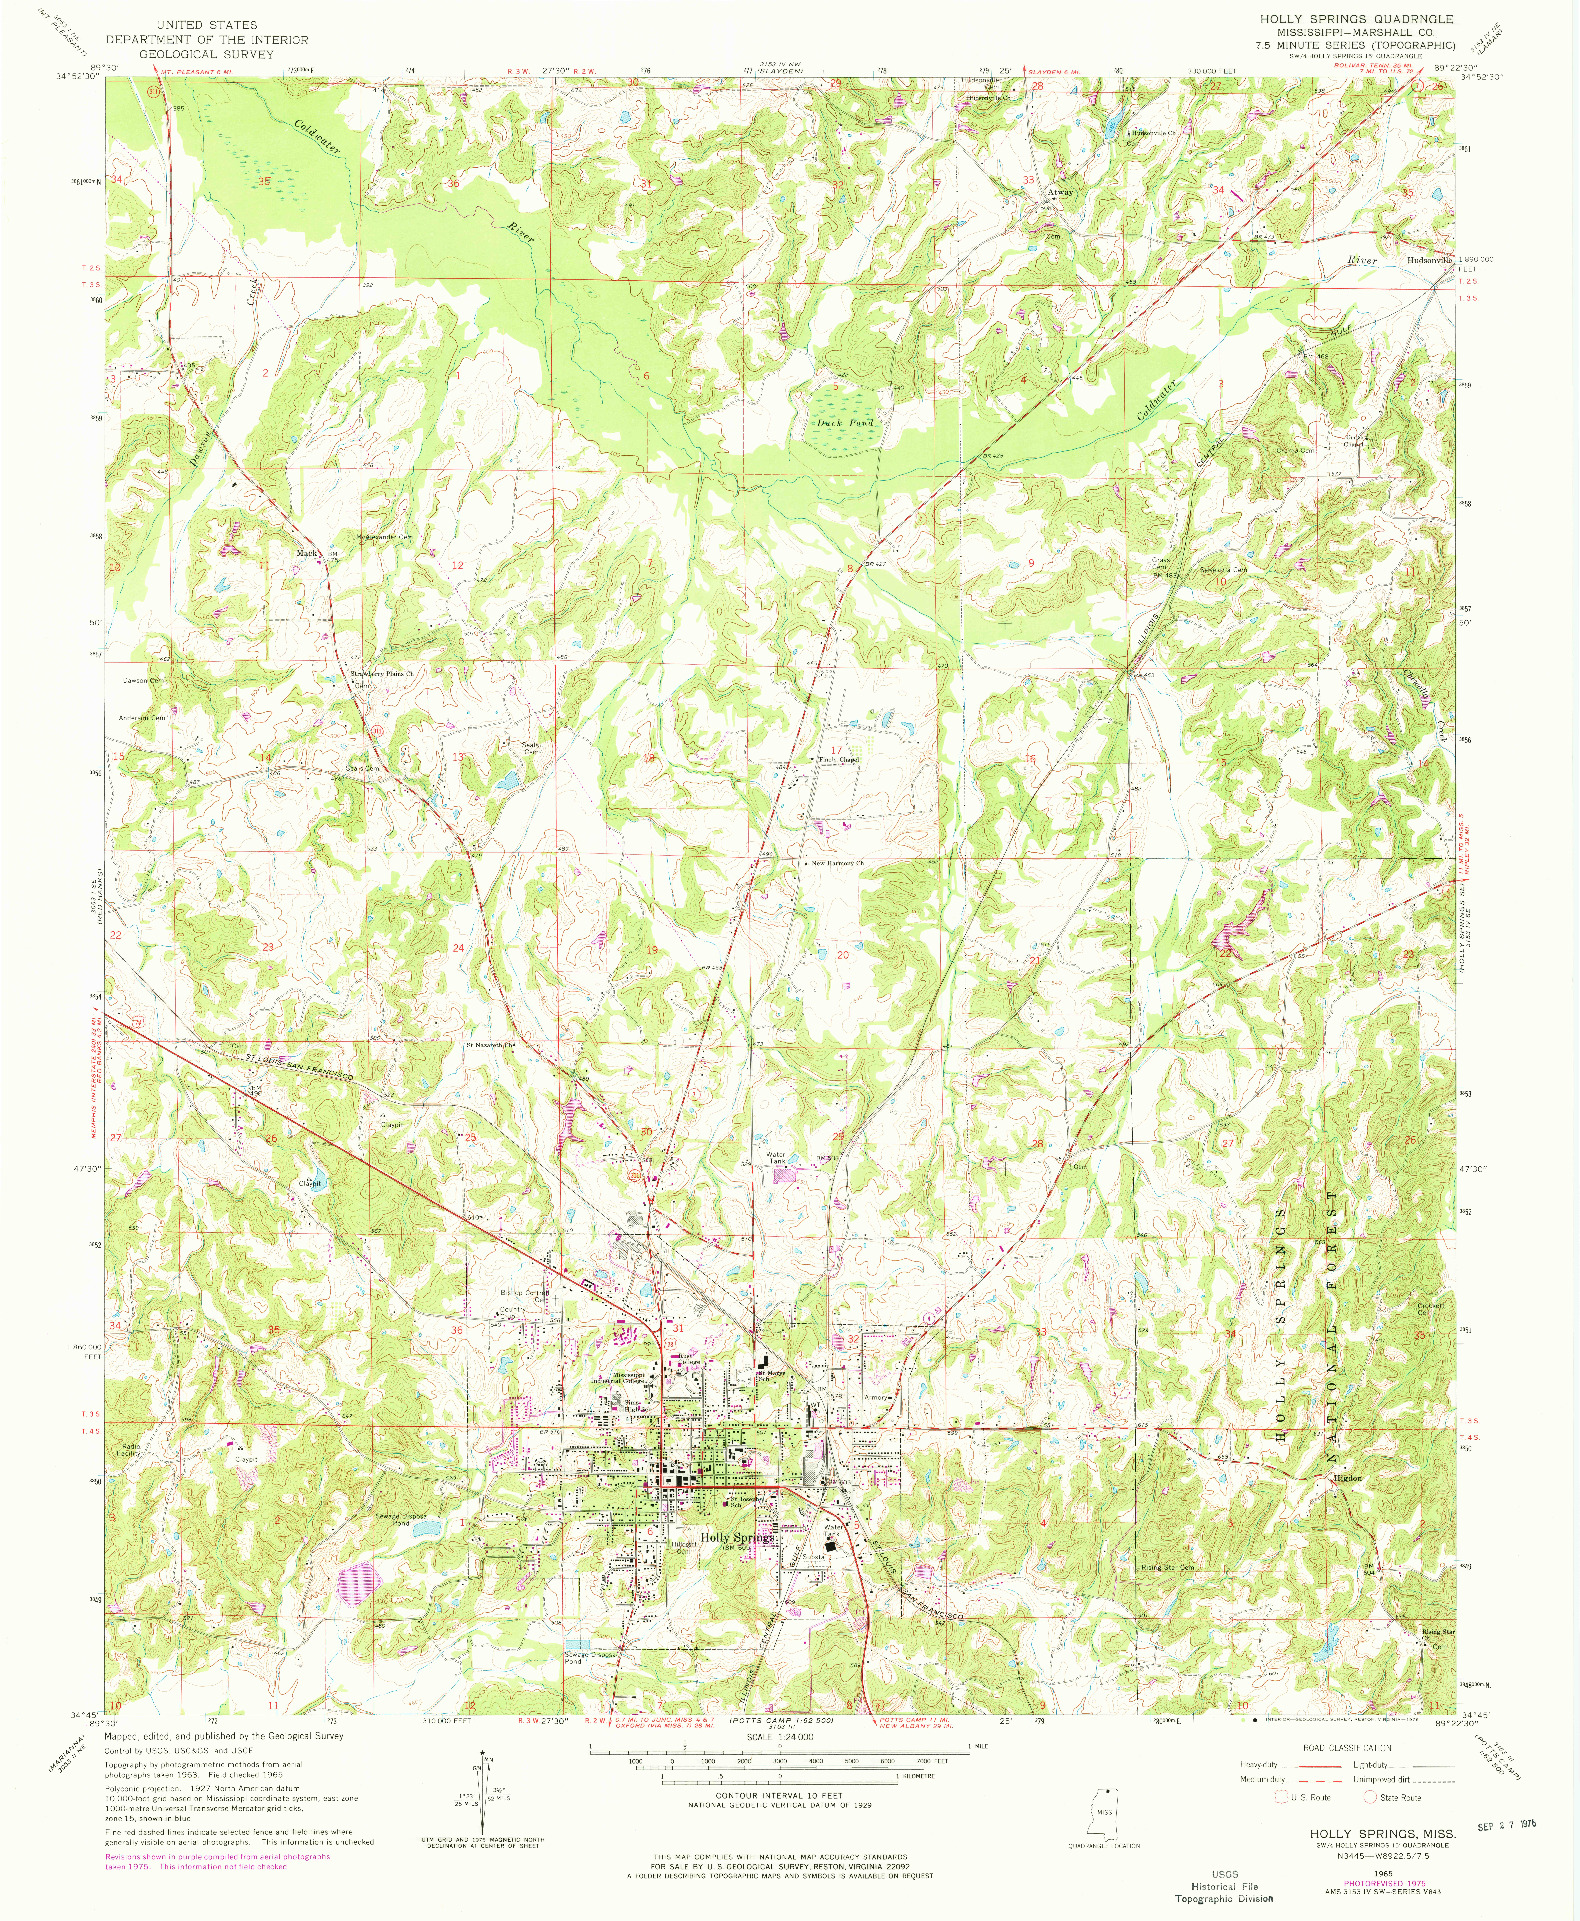 USGS 1:24000-SCALE QUADRANGLE FOR HOLLY SPRINGS, MS 1965